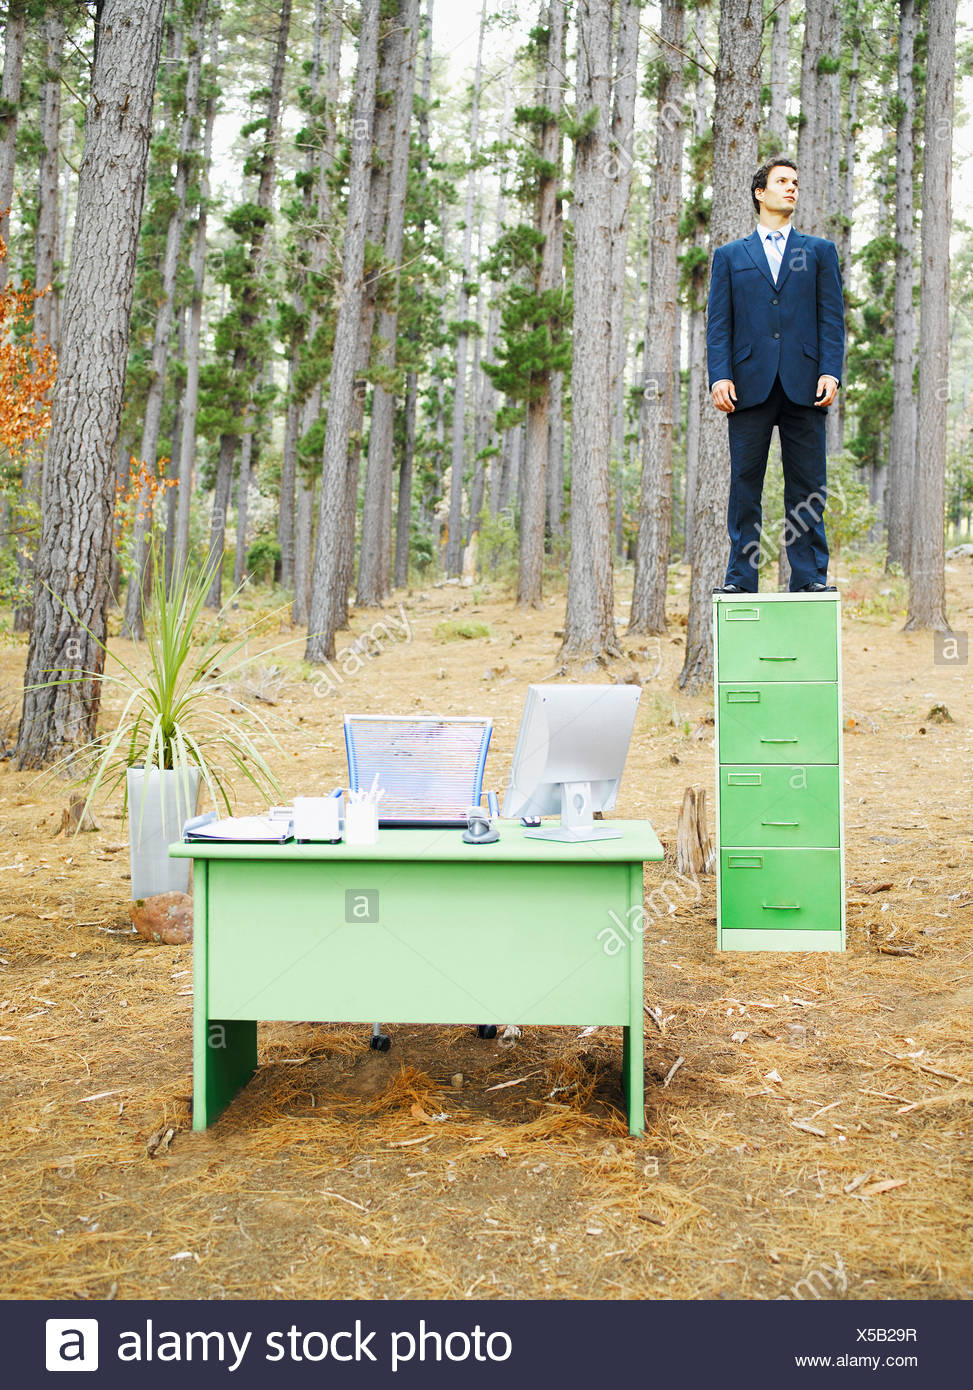 A businessman on his filing cabinet in the woods - Stock Image